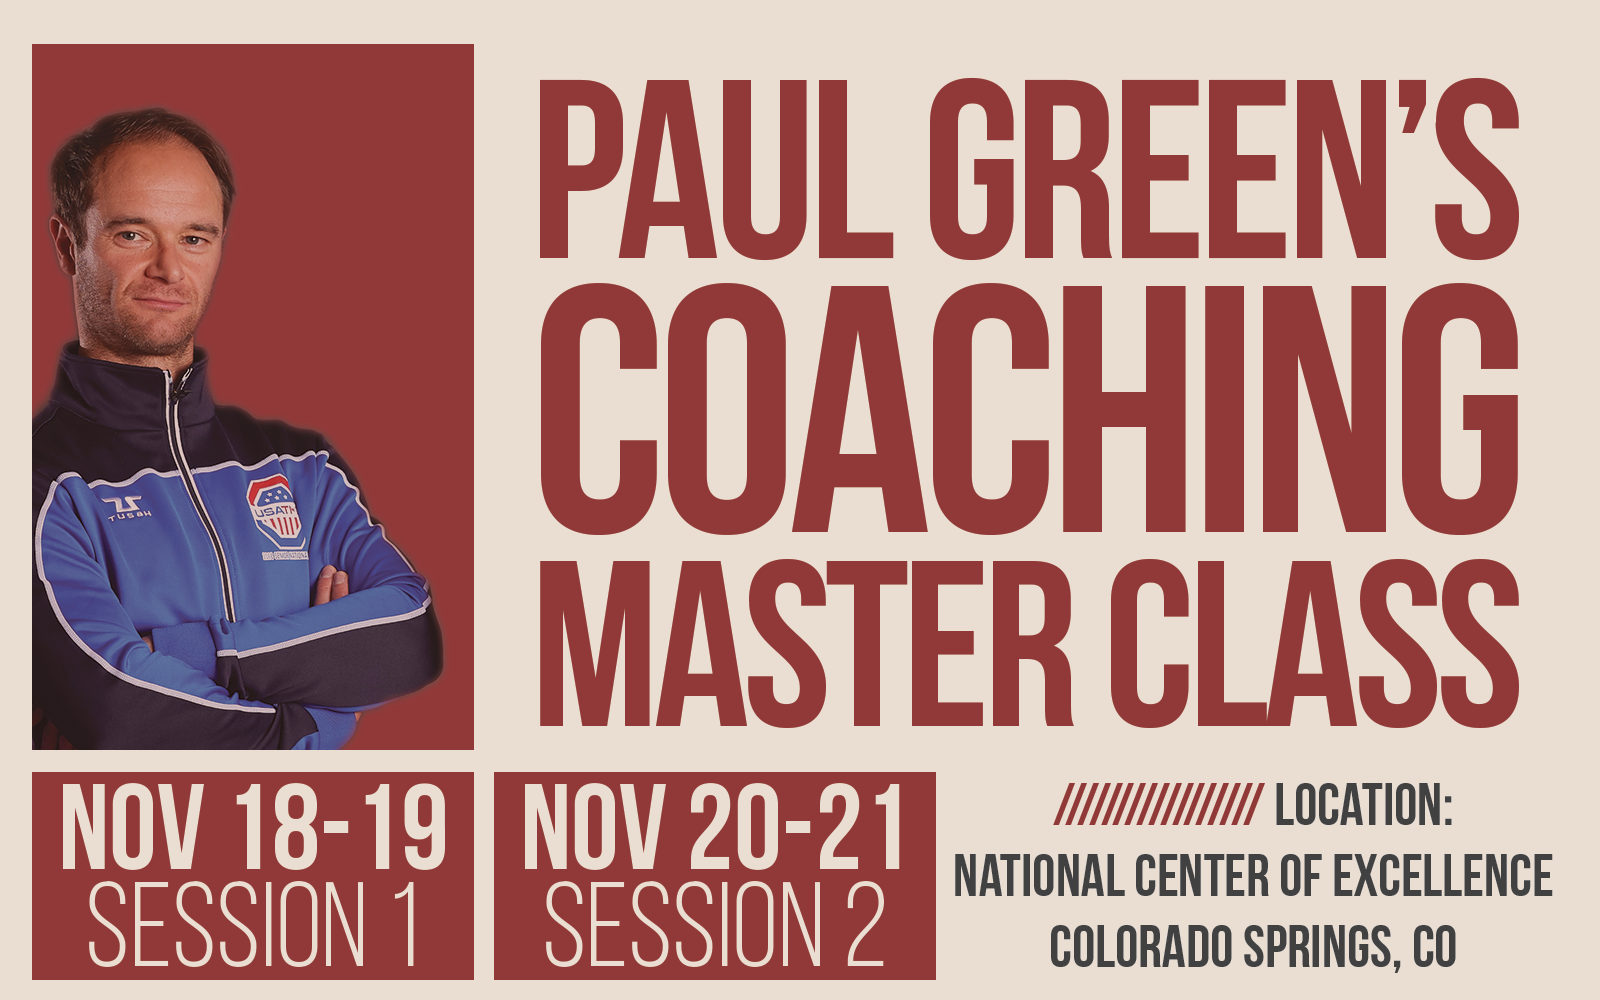 USA Taekwondo hold two-session coaching master class in Colorado Springs